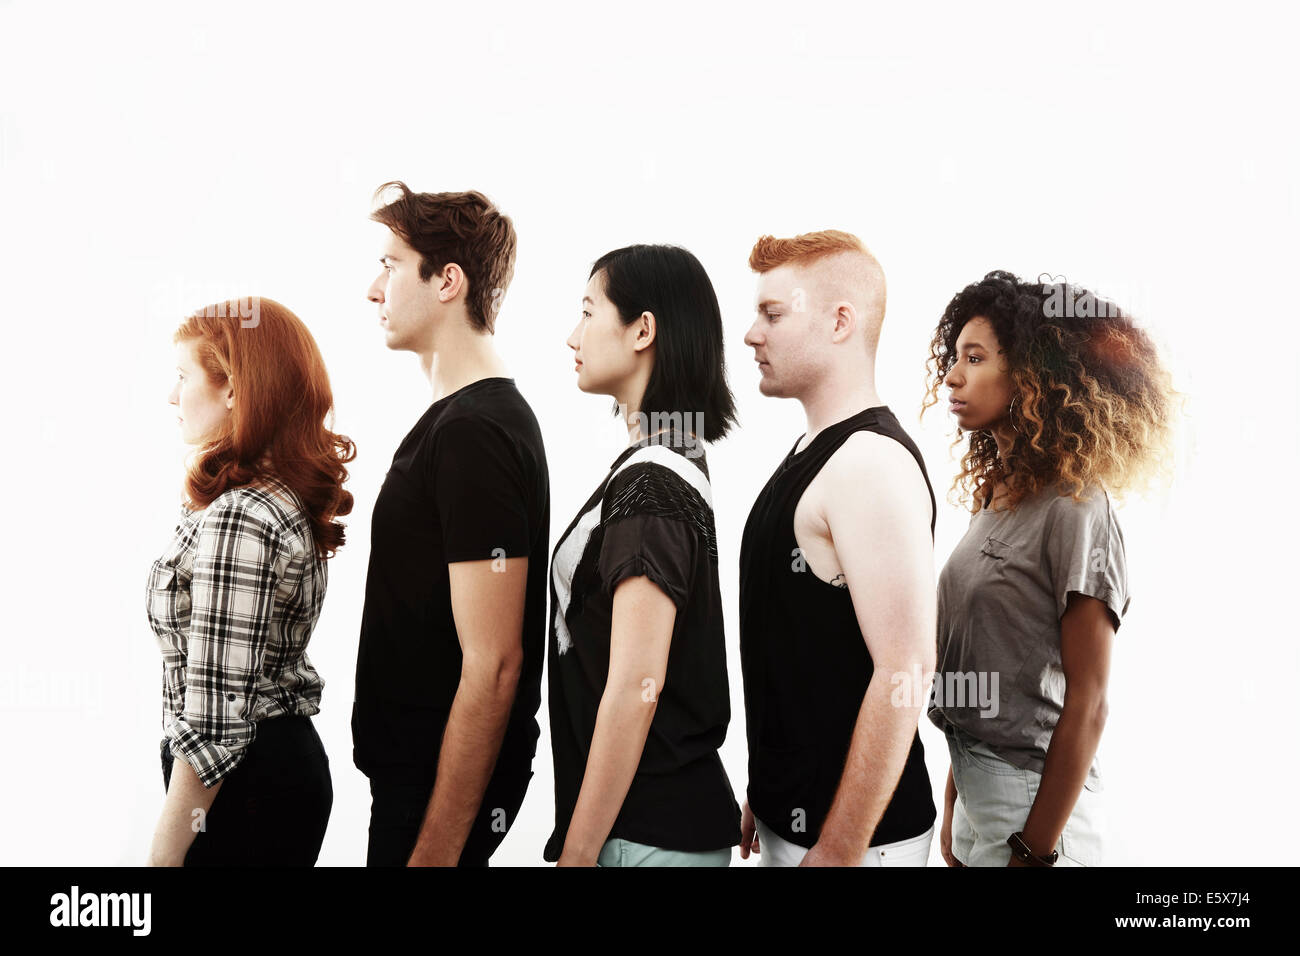 Side view studio portrait of five young adults in a row - Stock Image